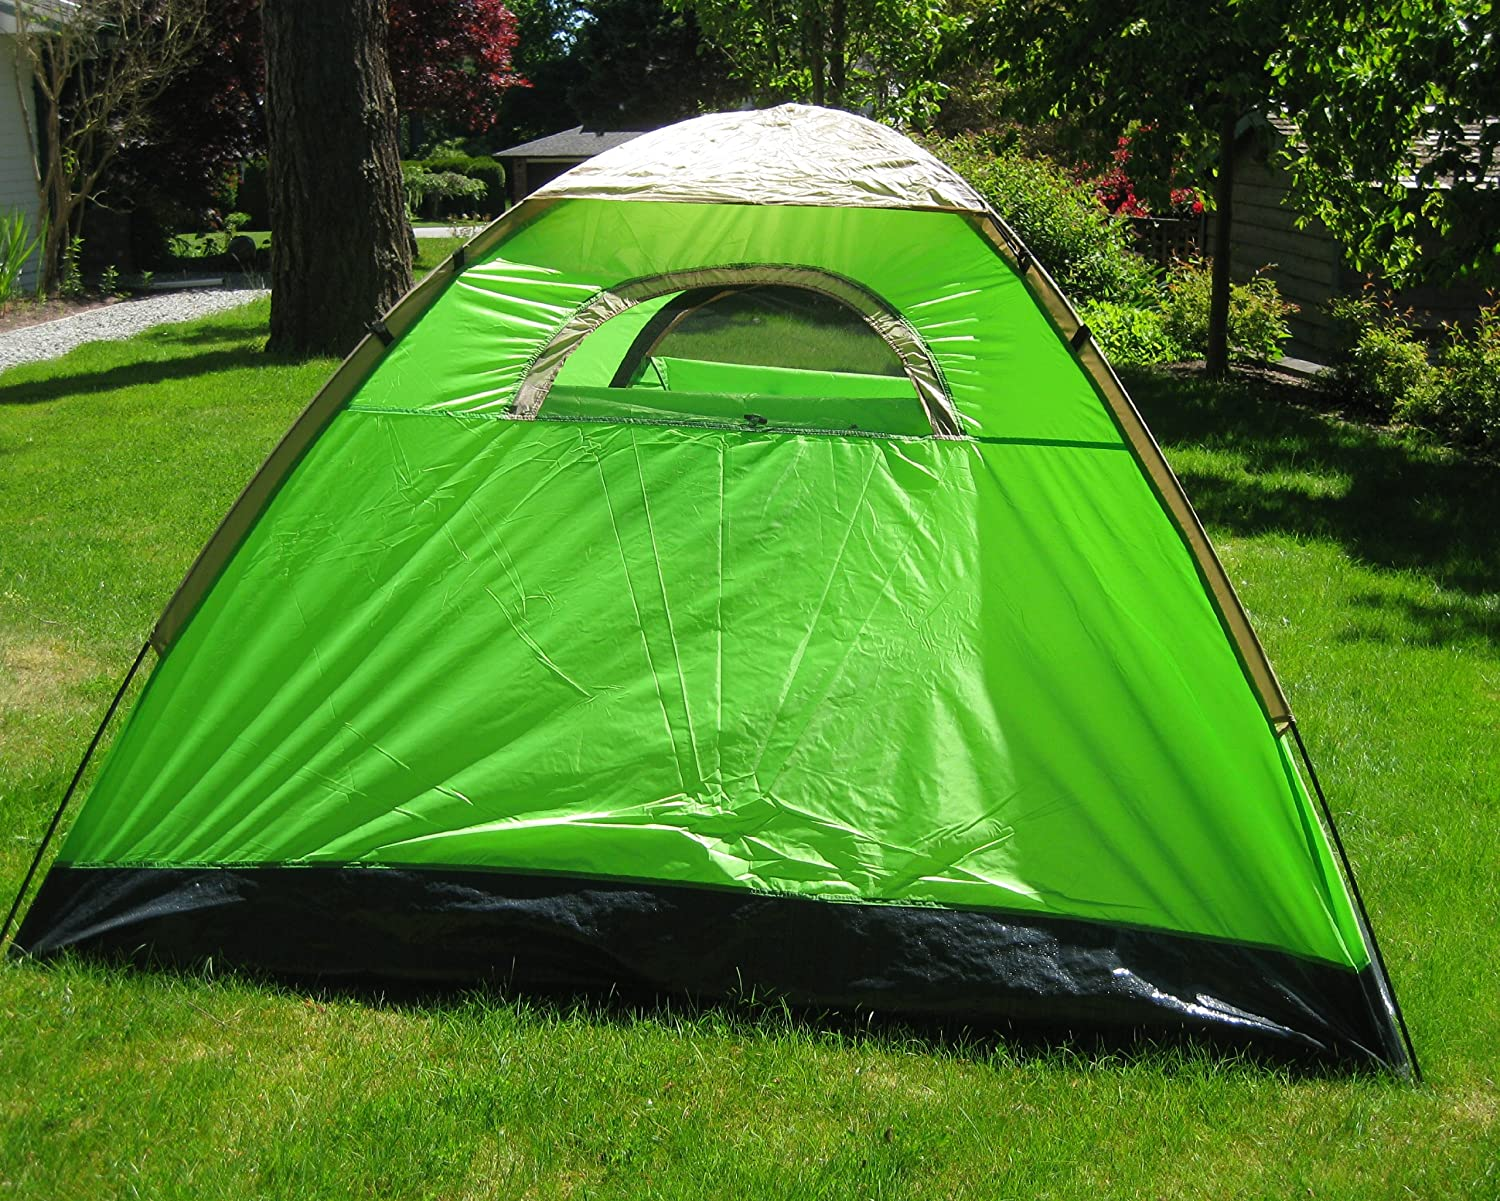 Amazon.com : Zaltana 3 PERSON TENT WITH AIR MATTRESS (DOUBLE) : Family Tents  : Sports & Outdoors